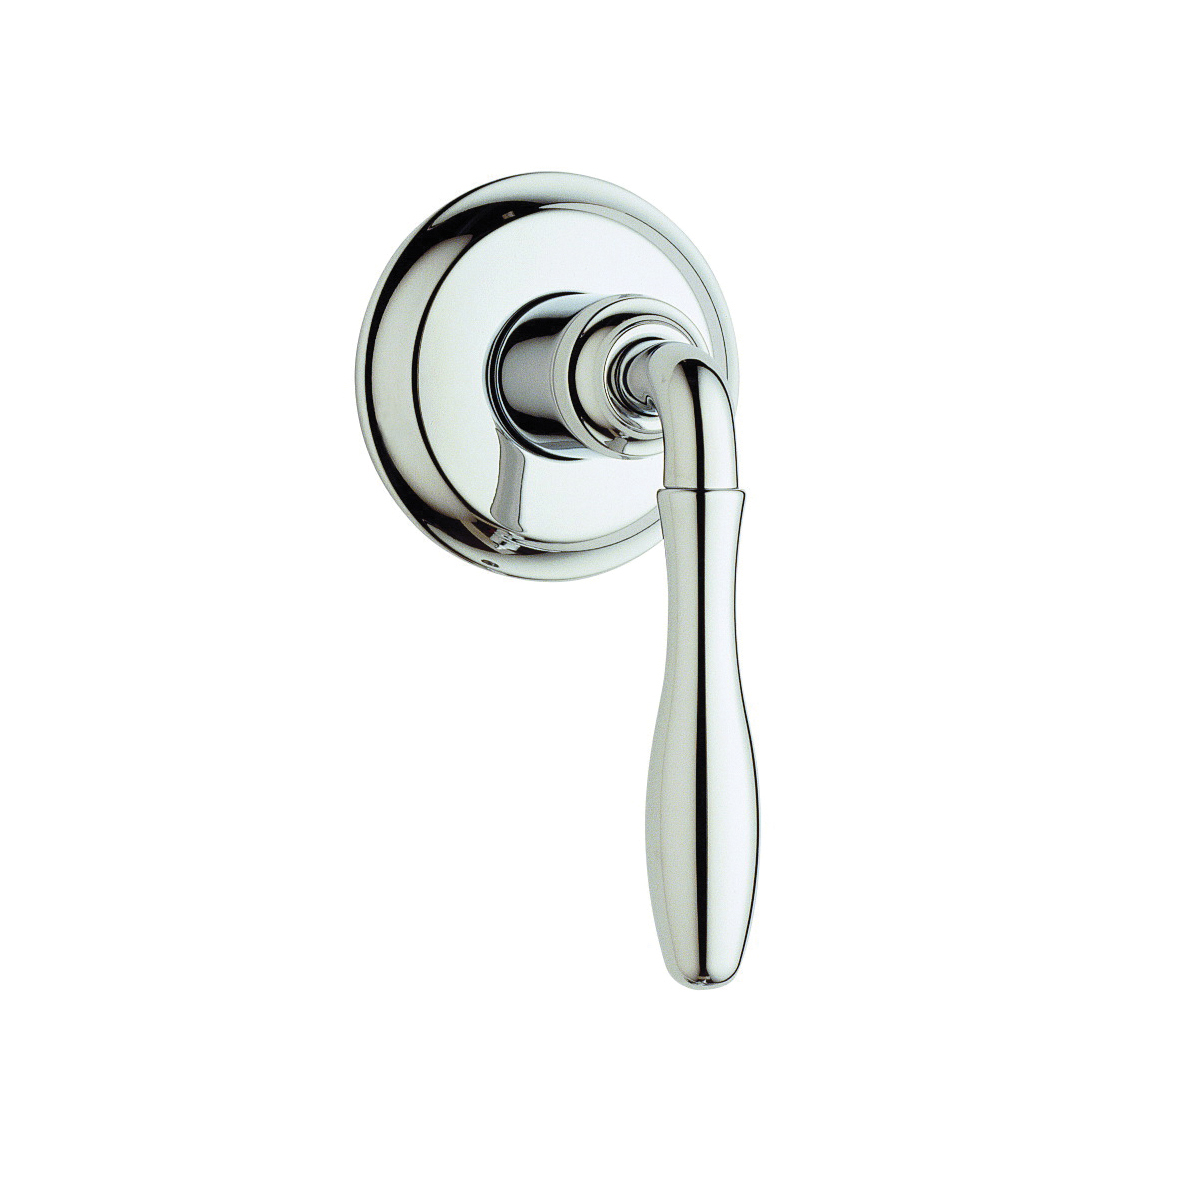 GROHE 19828000 Seabury™ Volume Control Valve Trim, StarLight® Chrome Plated